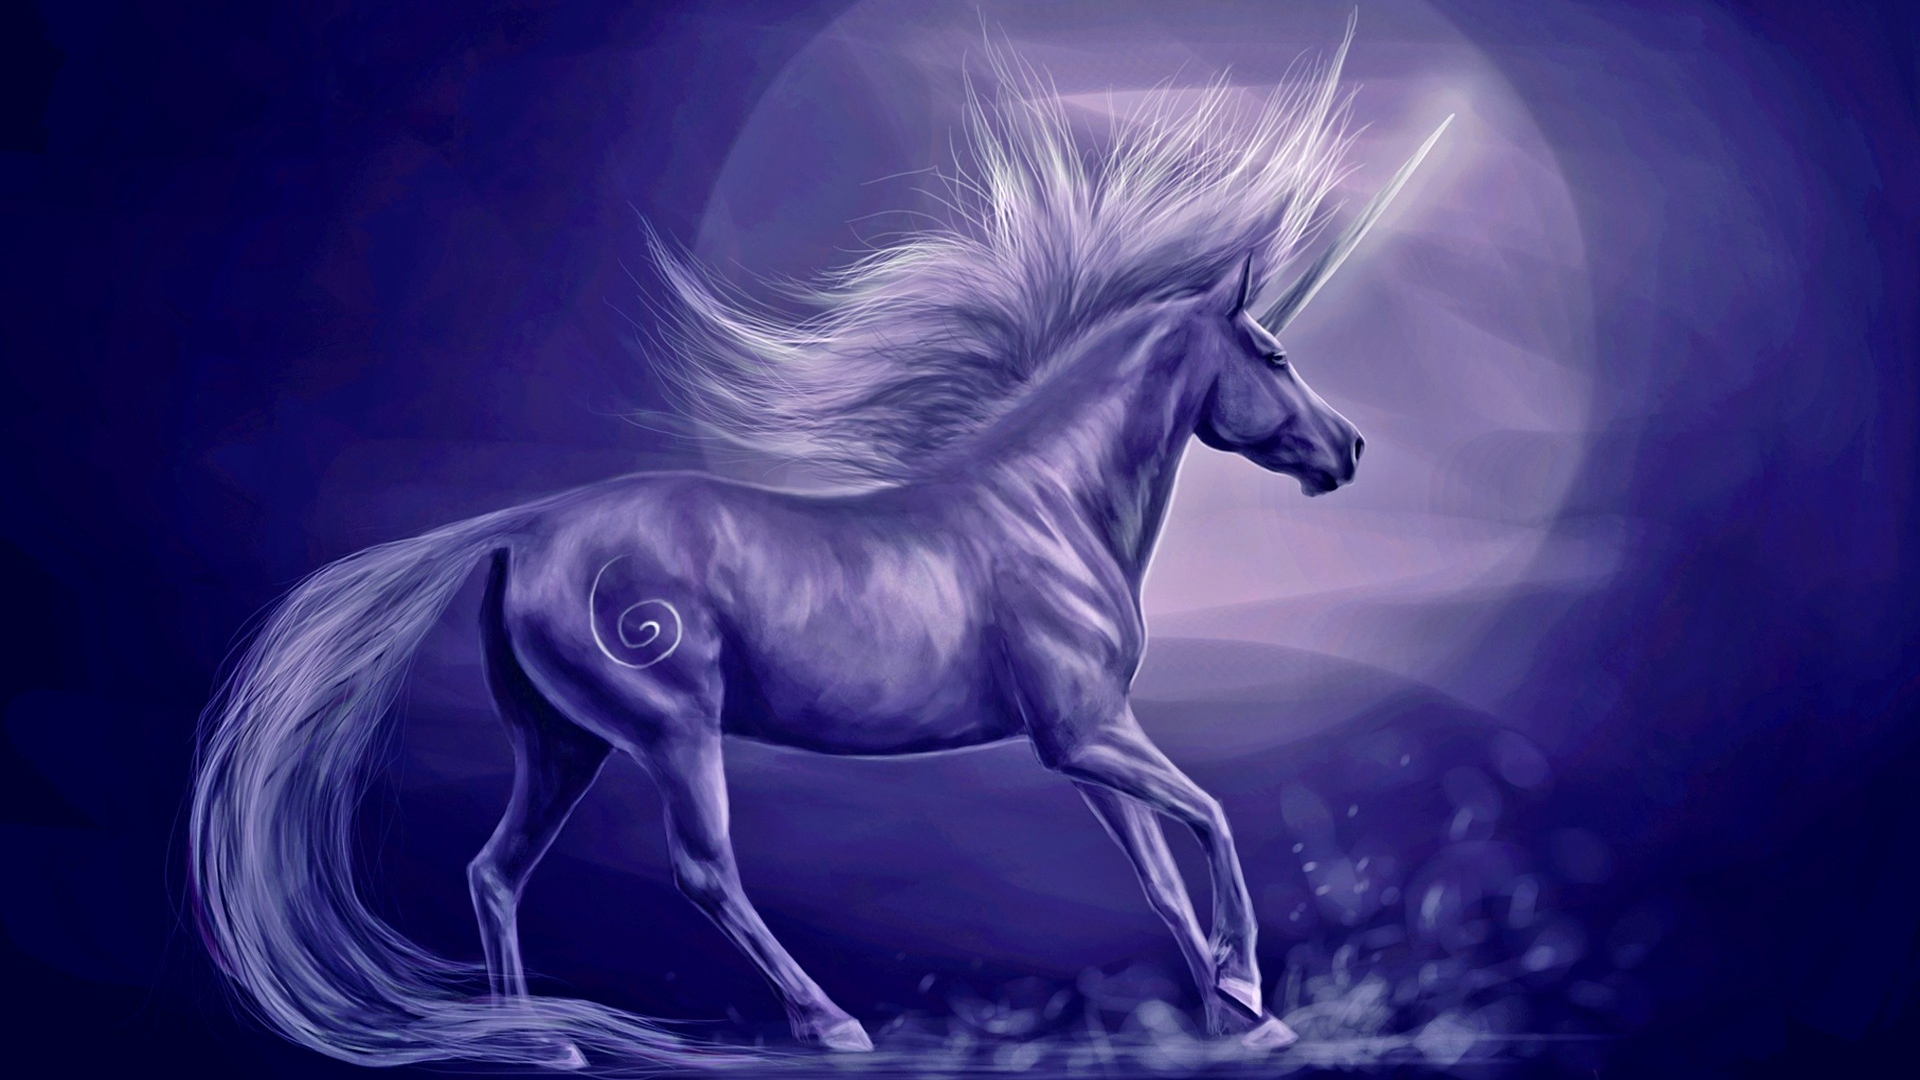 unicorn wallpapers full hd - photo #6